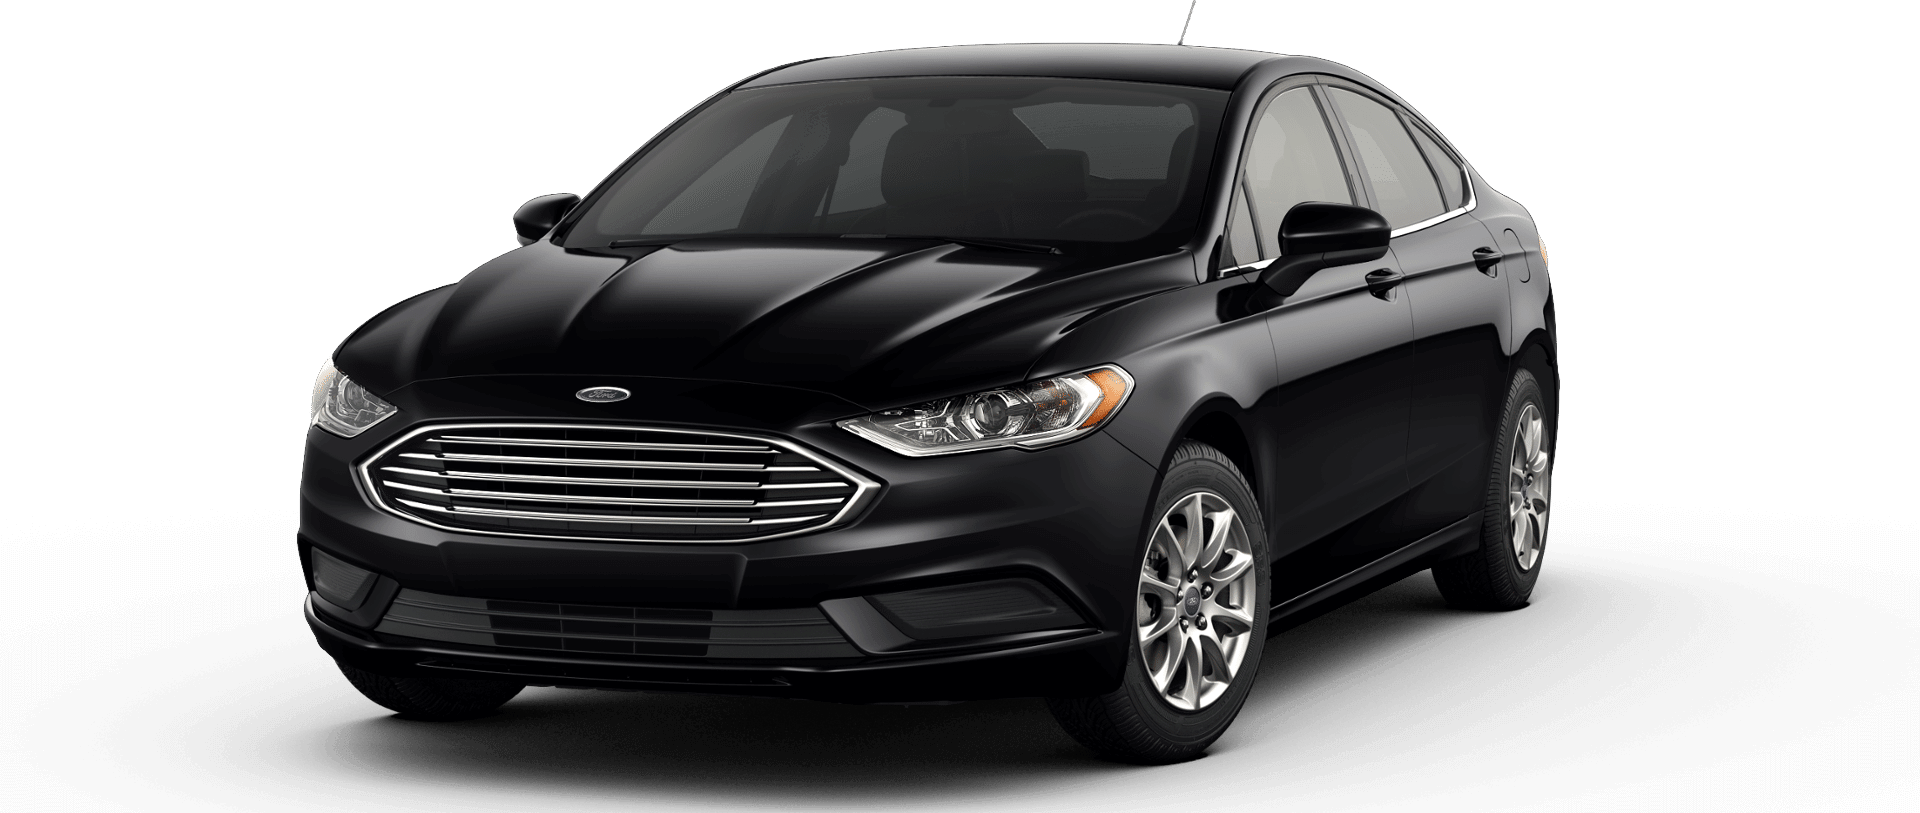 ford fusion mpg 2017 2018 2019 ford price release date reviews. Black Bedroom Furniture Sets. Home Design Ideas